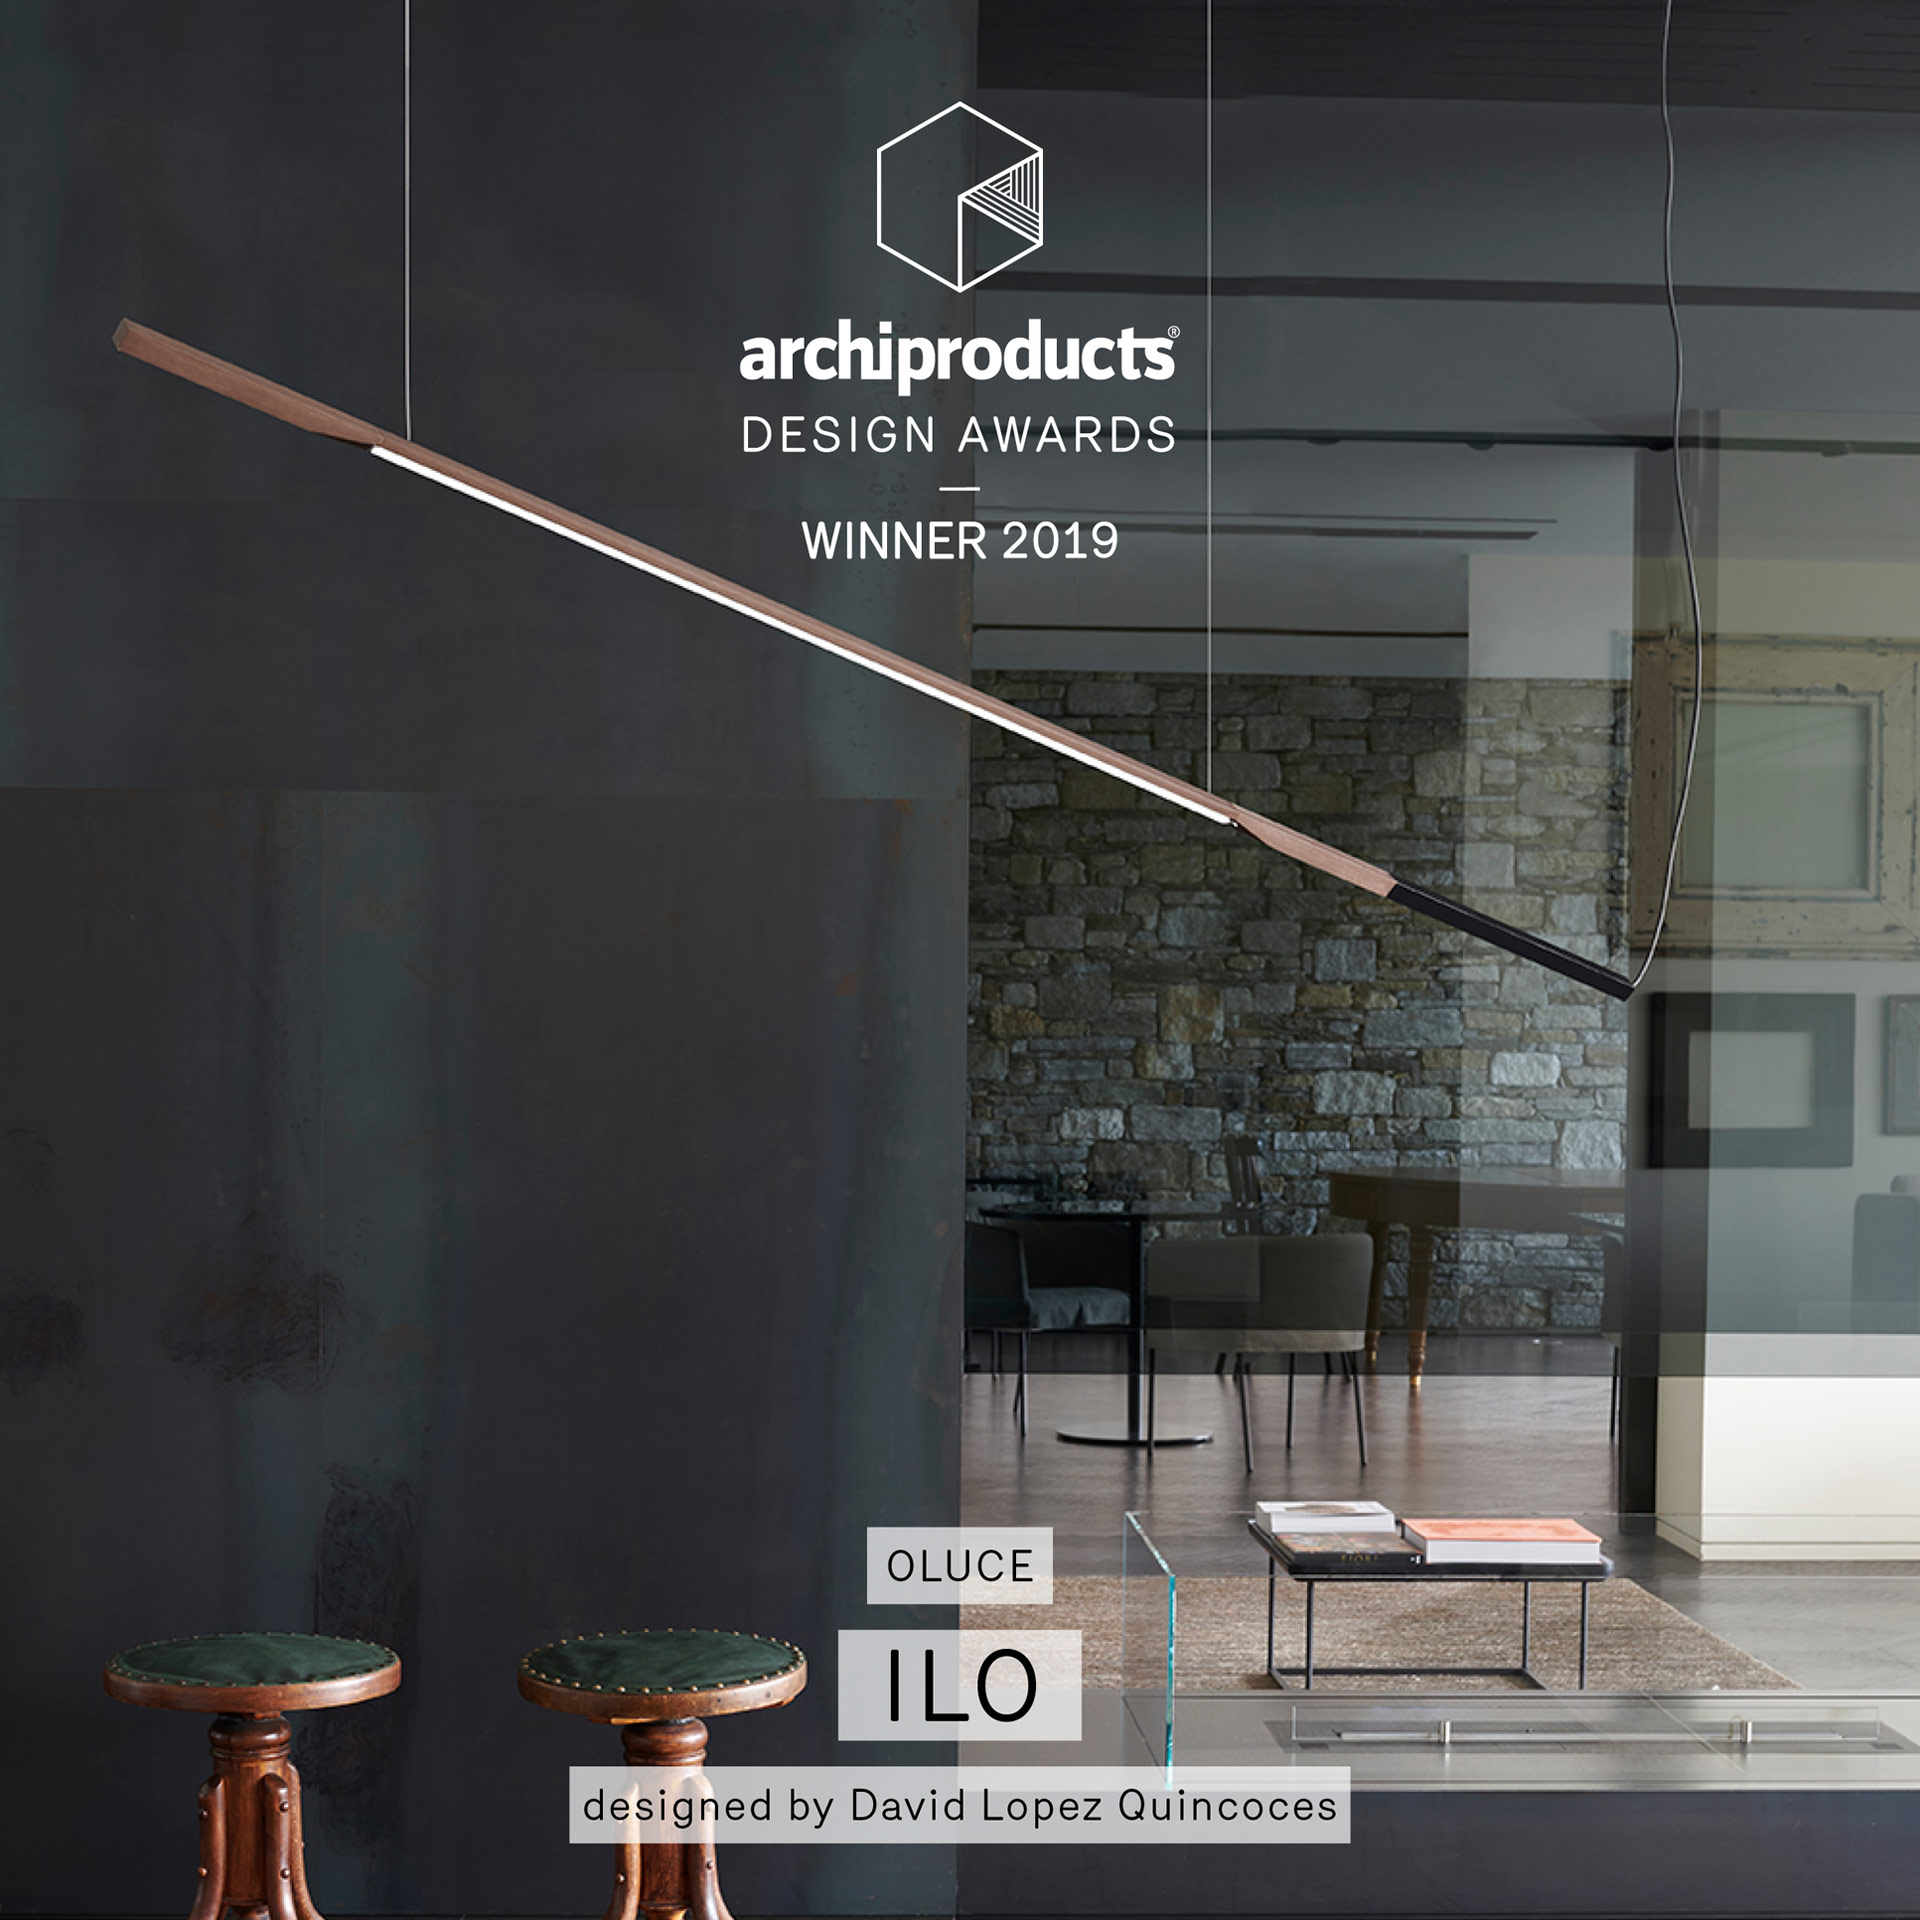 Ilo by David Lopez Quincoces wins the Archiproducts Design Awards 2019